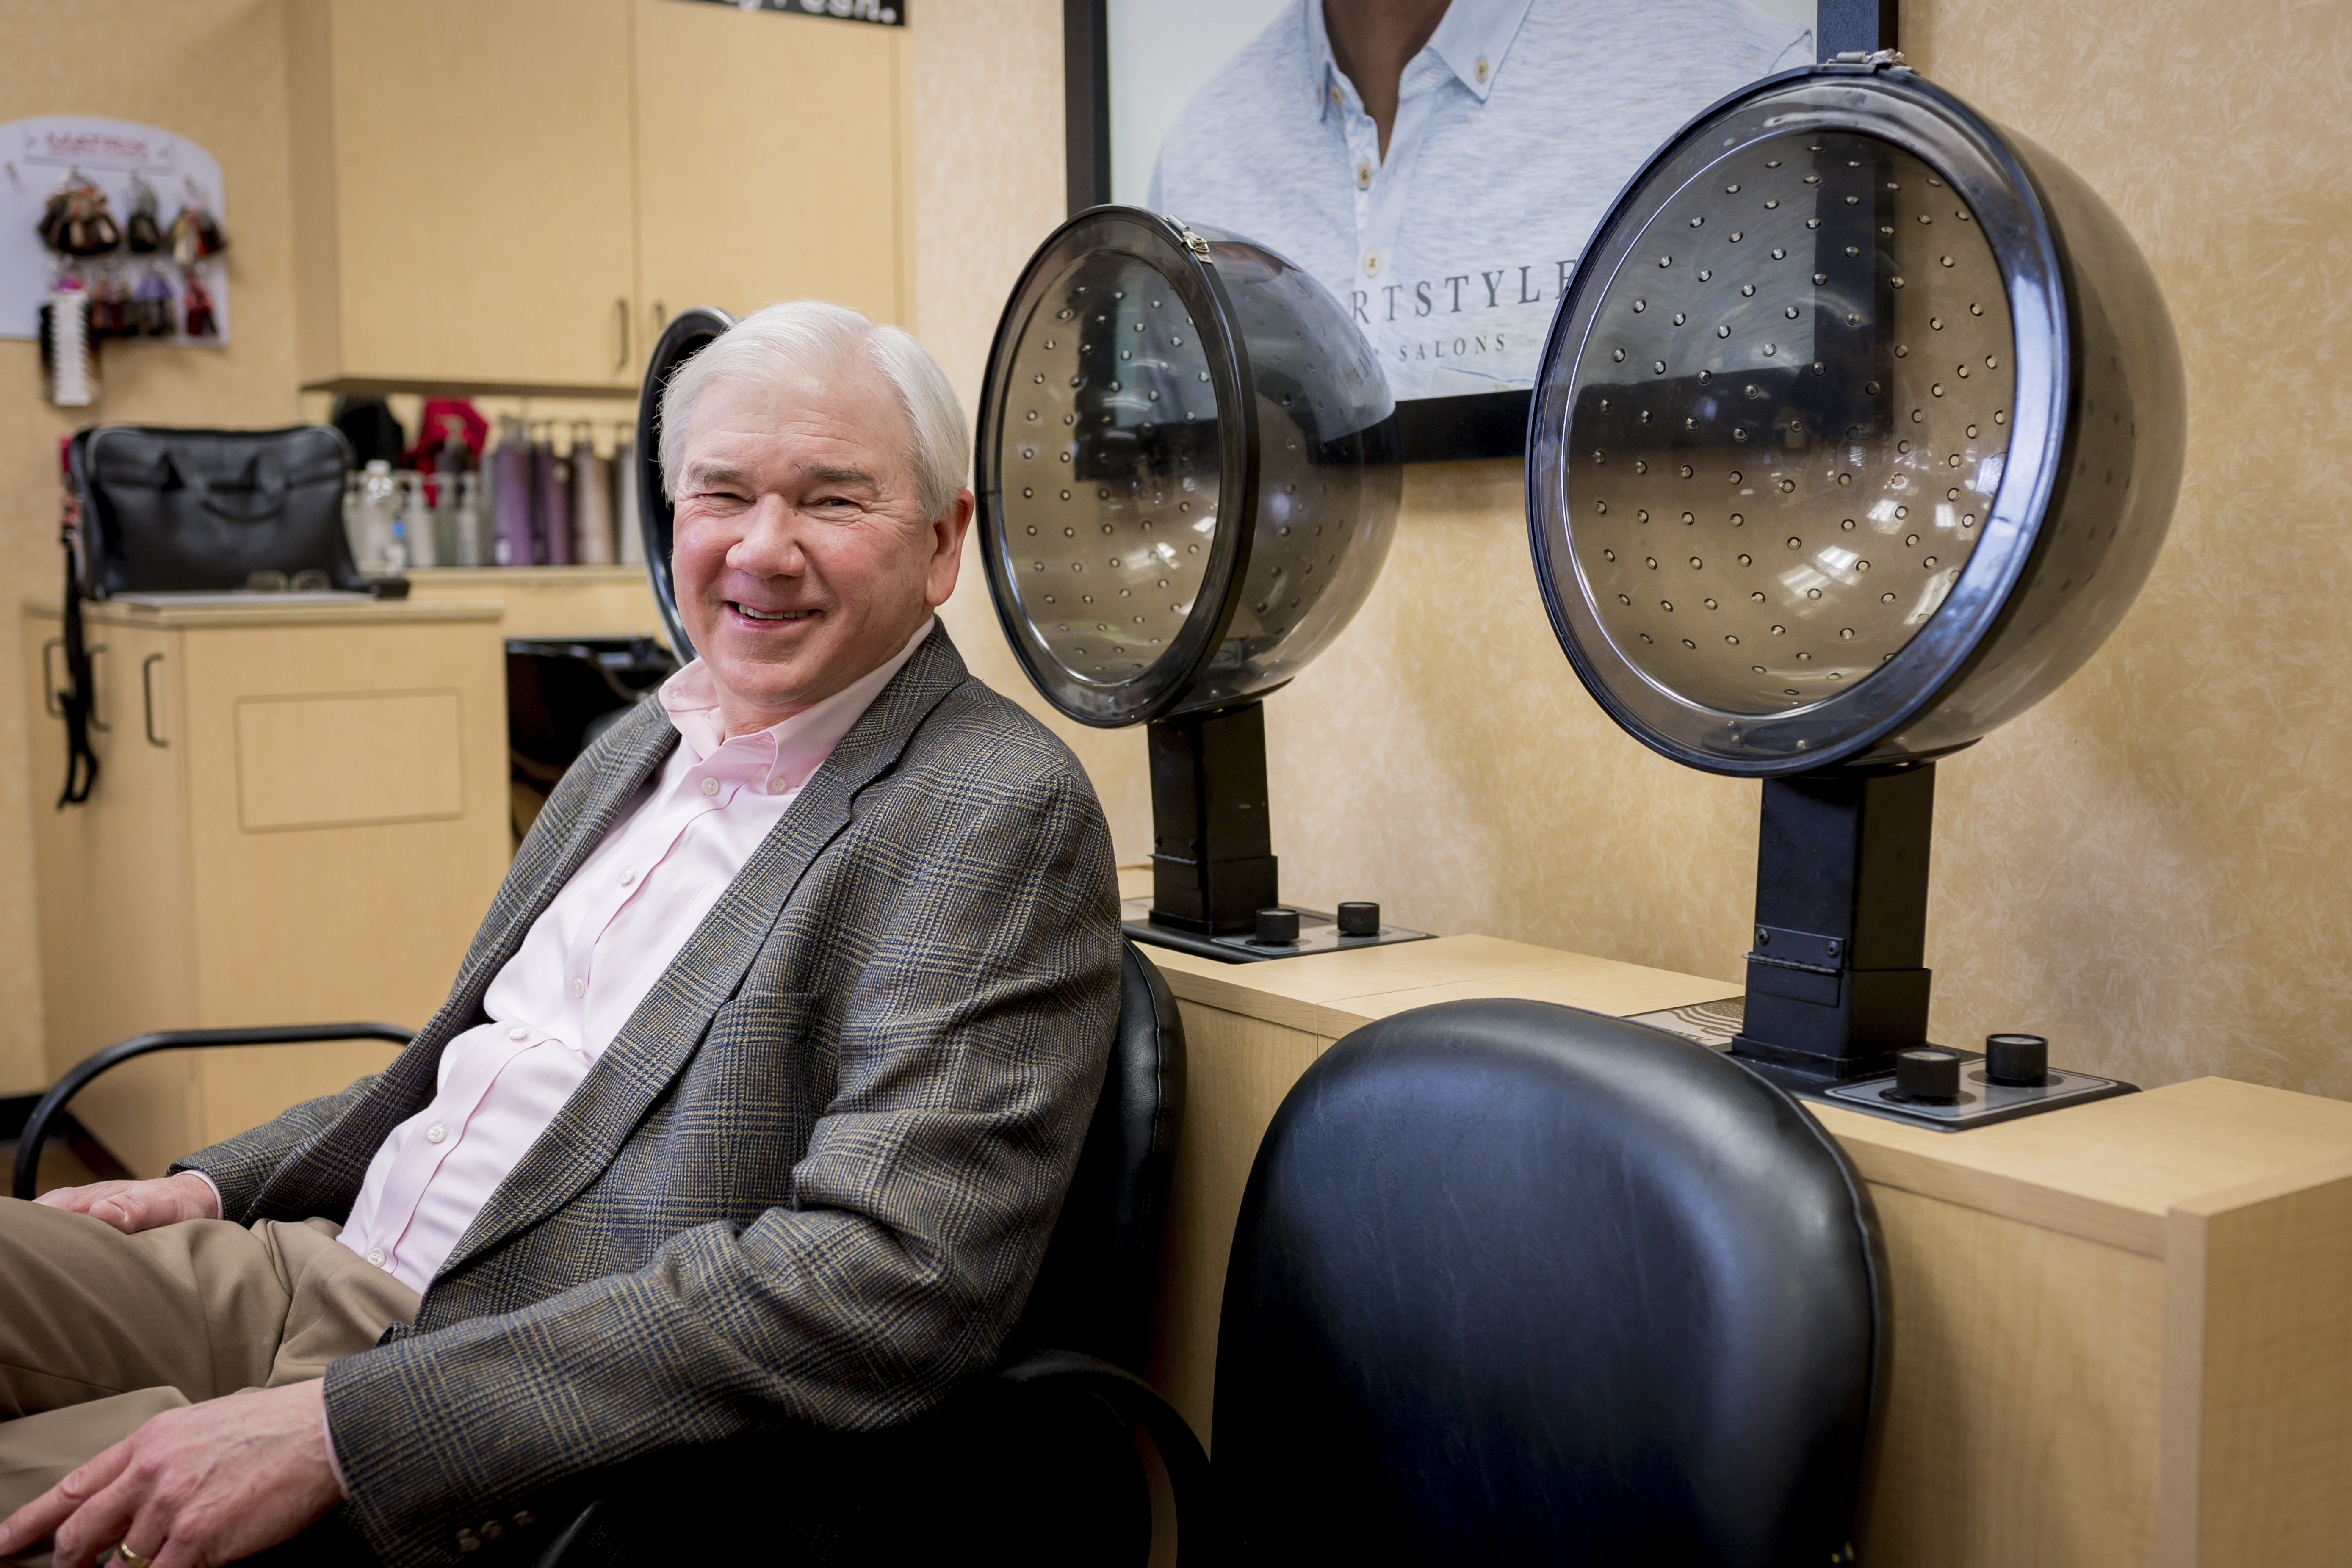 Retiring in style: former corporate executive realizes entrepreneurial dream in franchise ownership